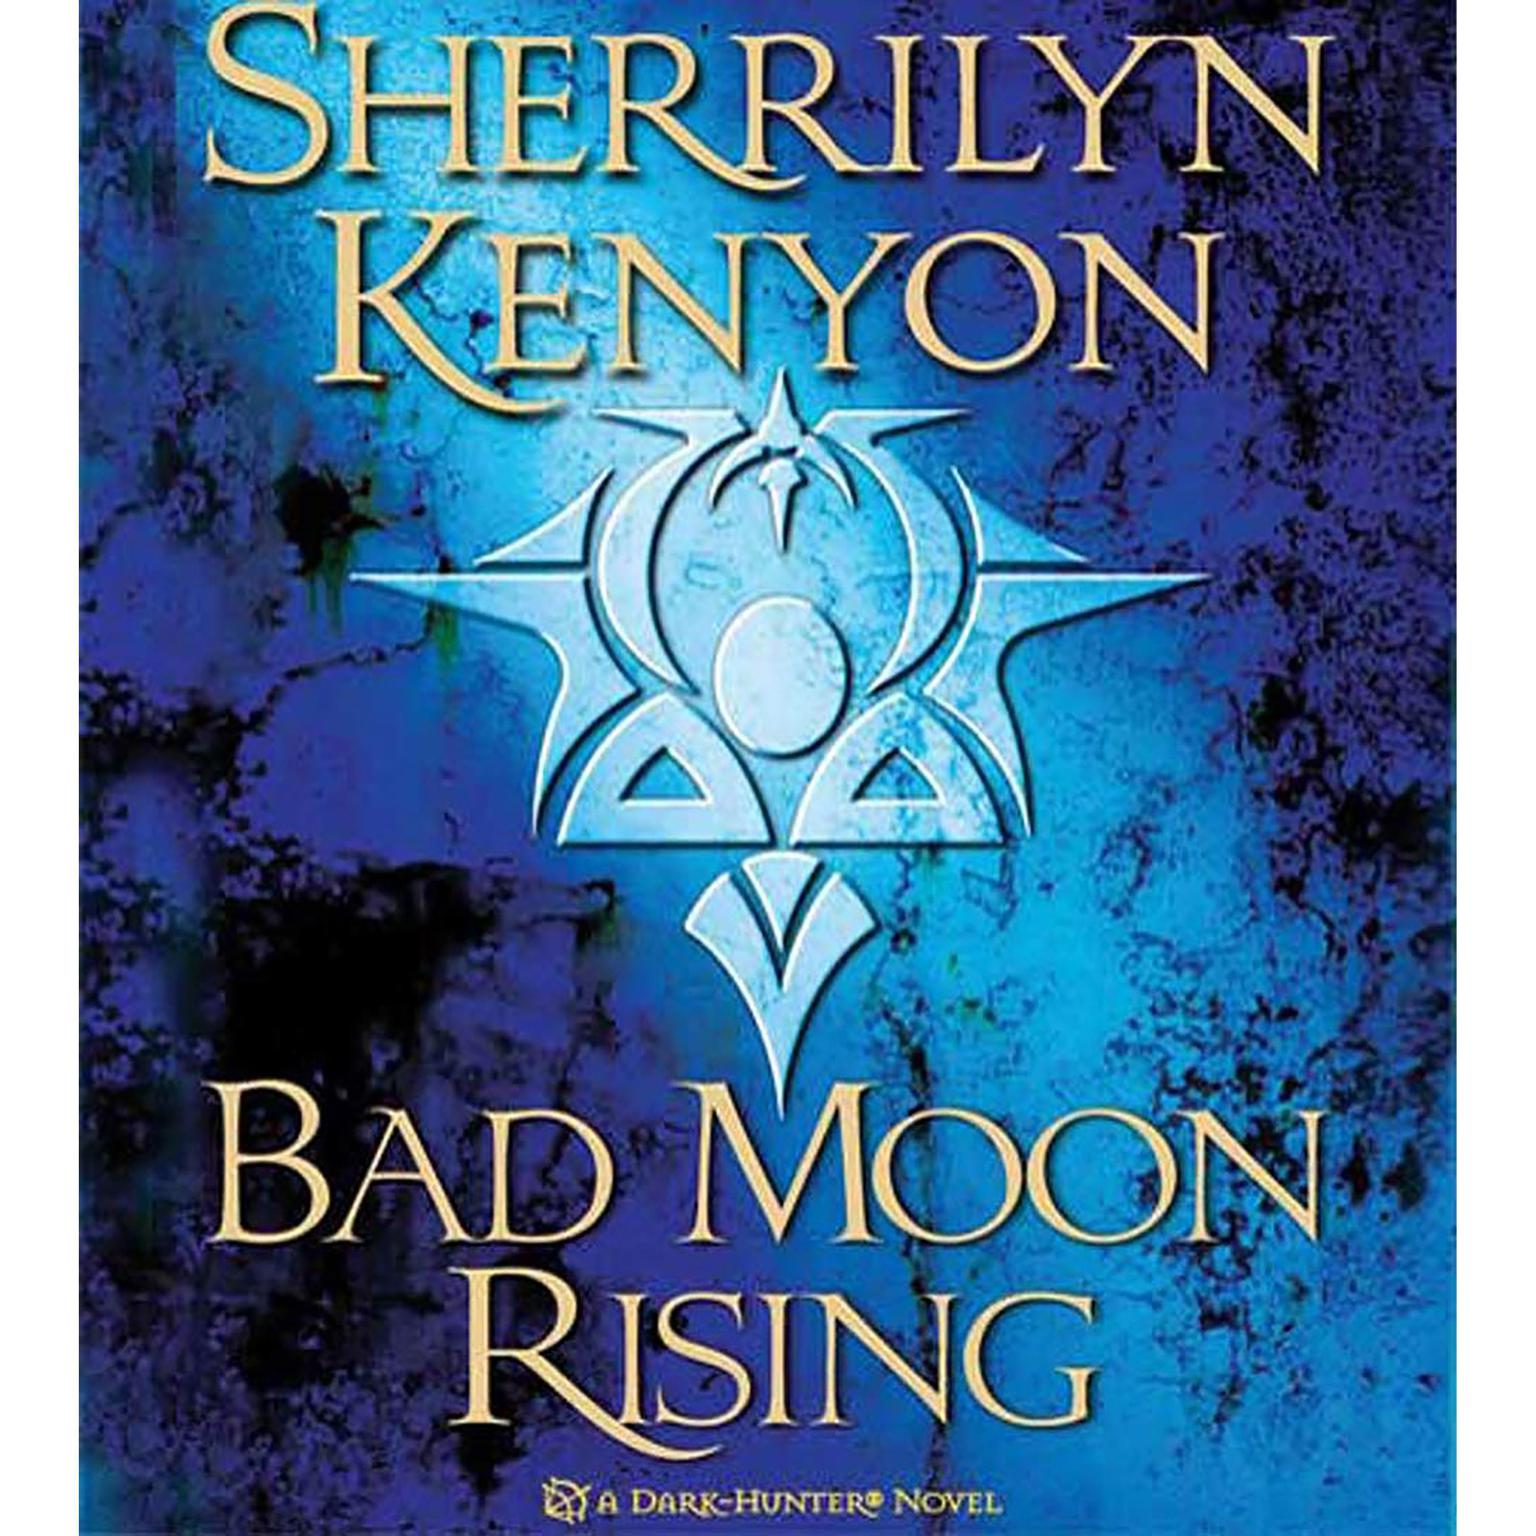 Printable Bad Moon Rising: A Dark-Hunter Novel Audiobook Cover Art